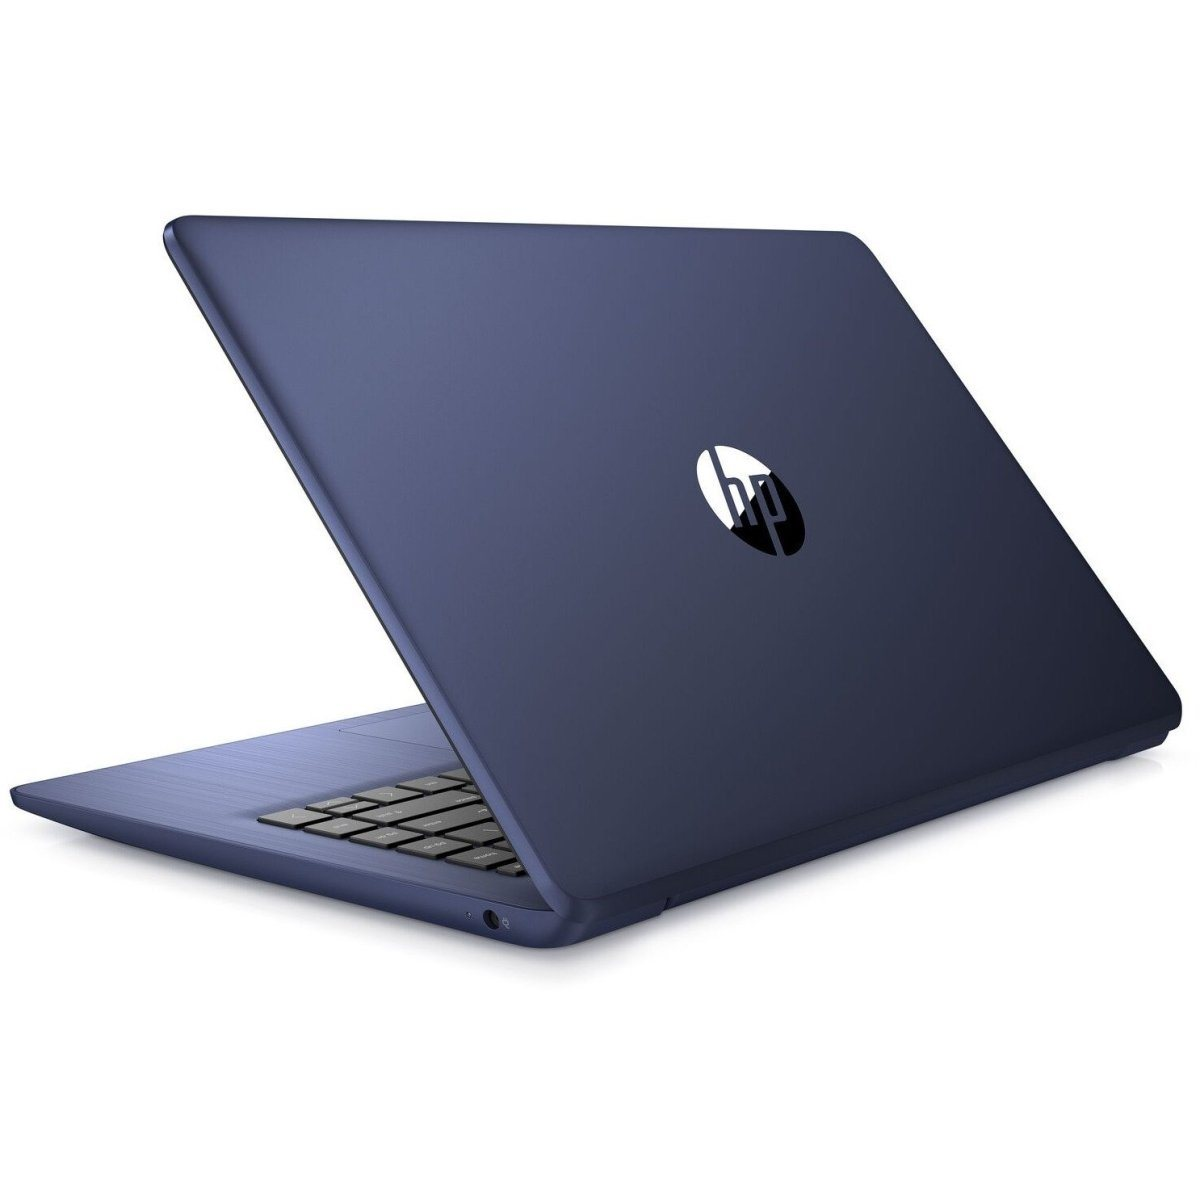 "HP Stream 14"" Laptop - Fix Or Cell Now Device Shop"